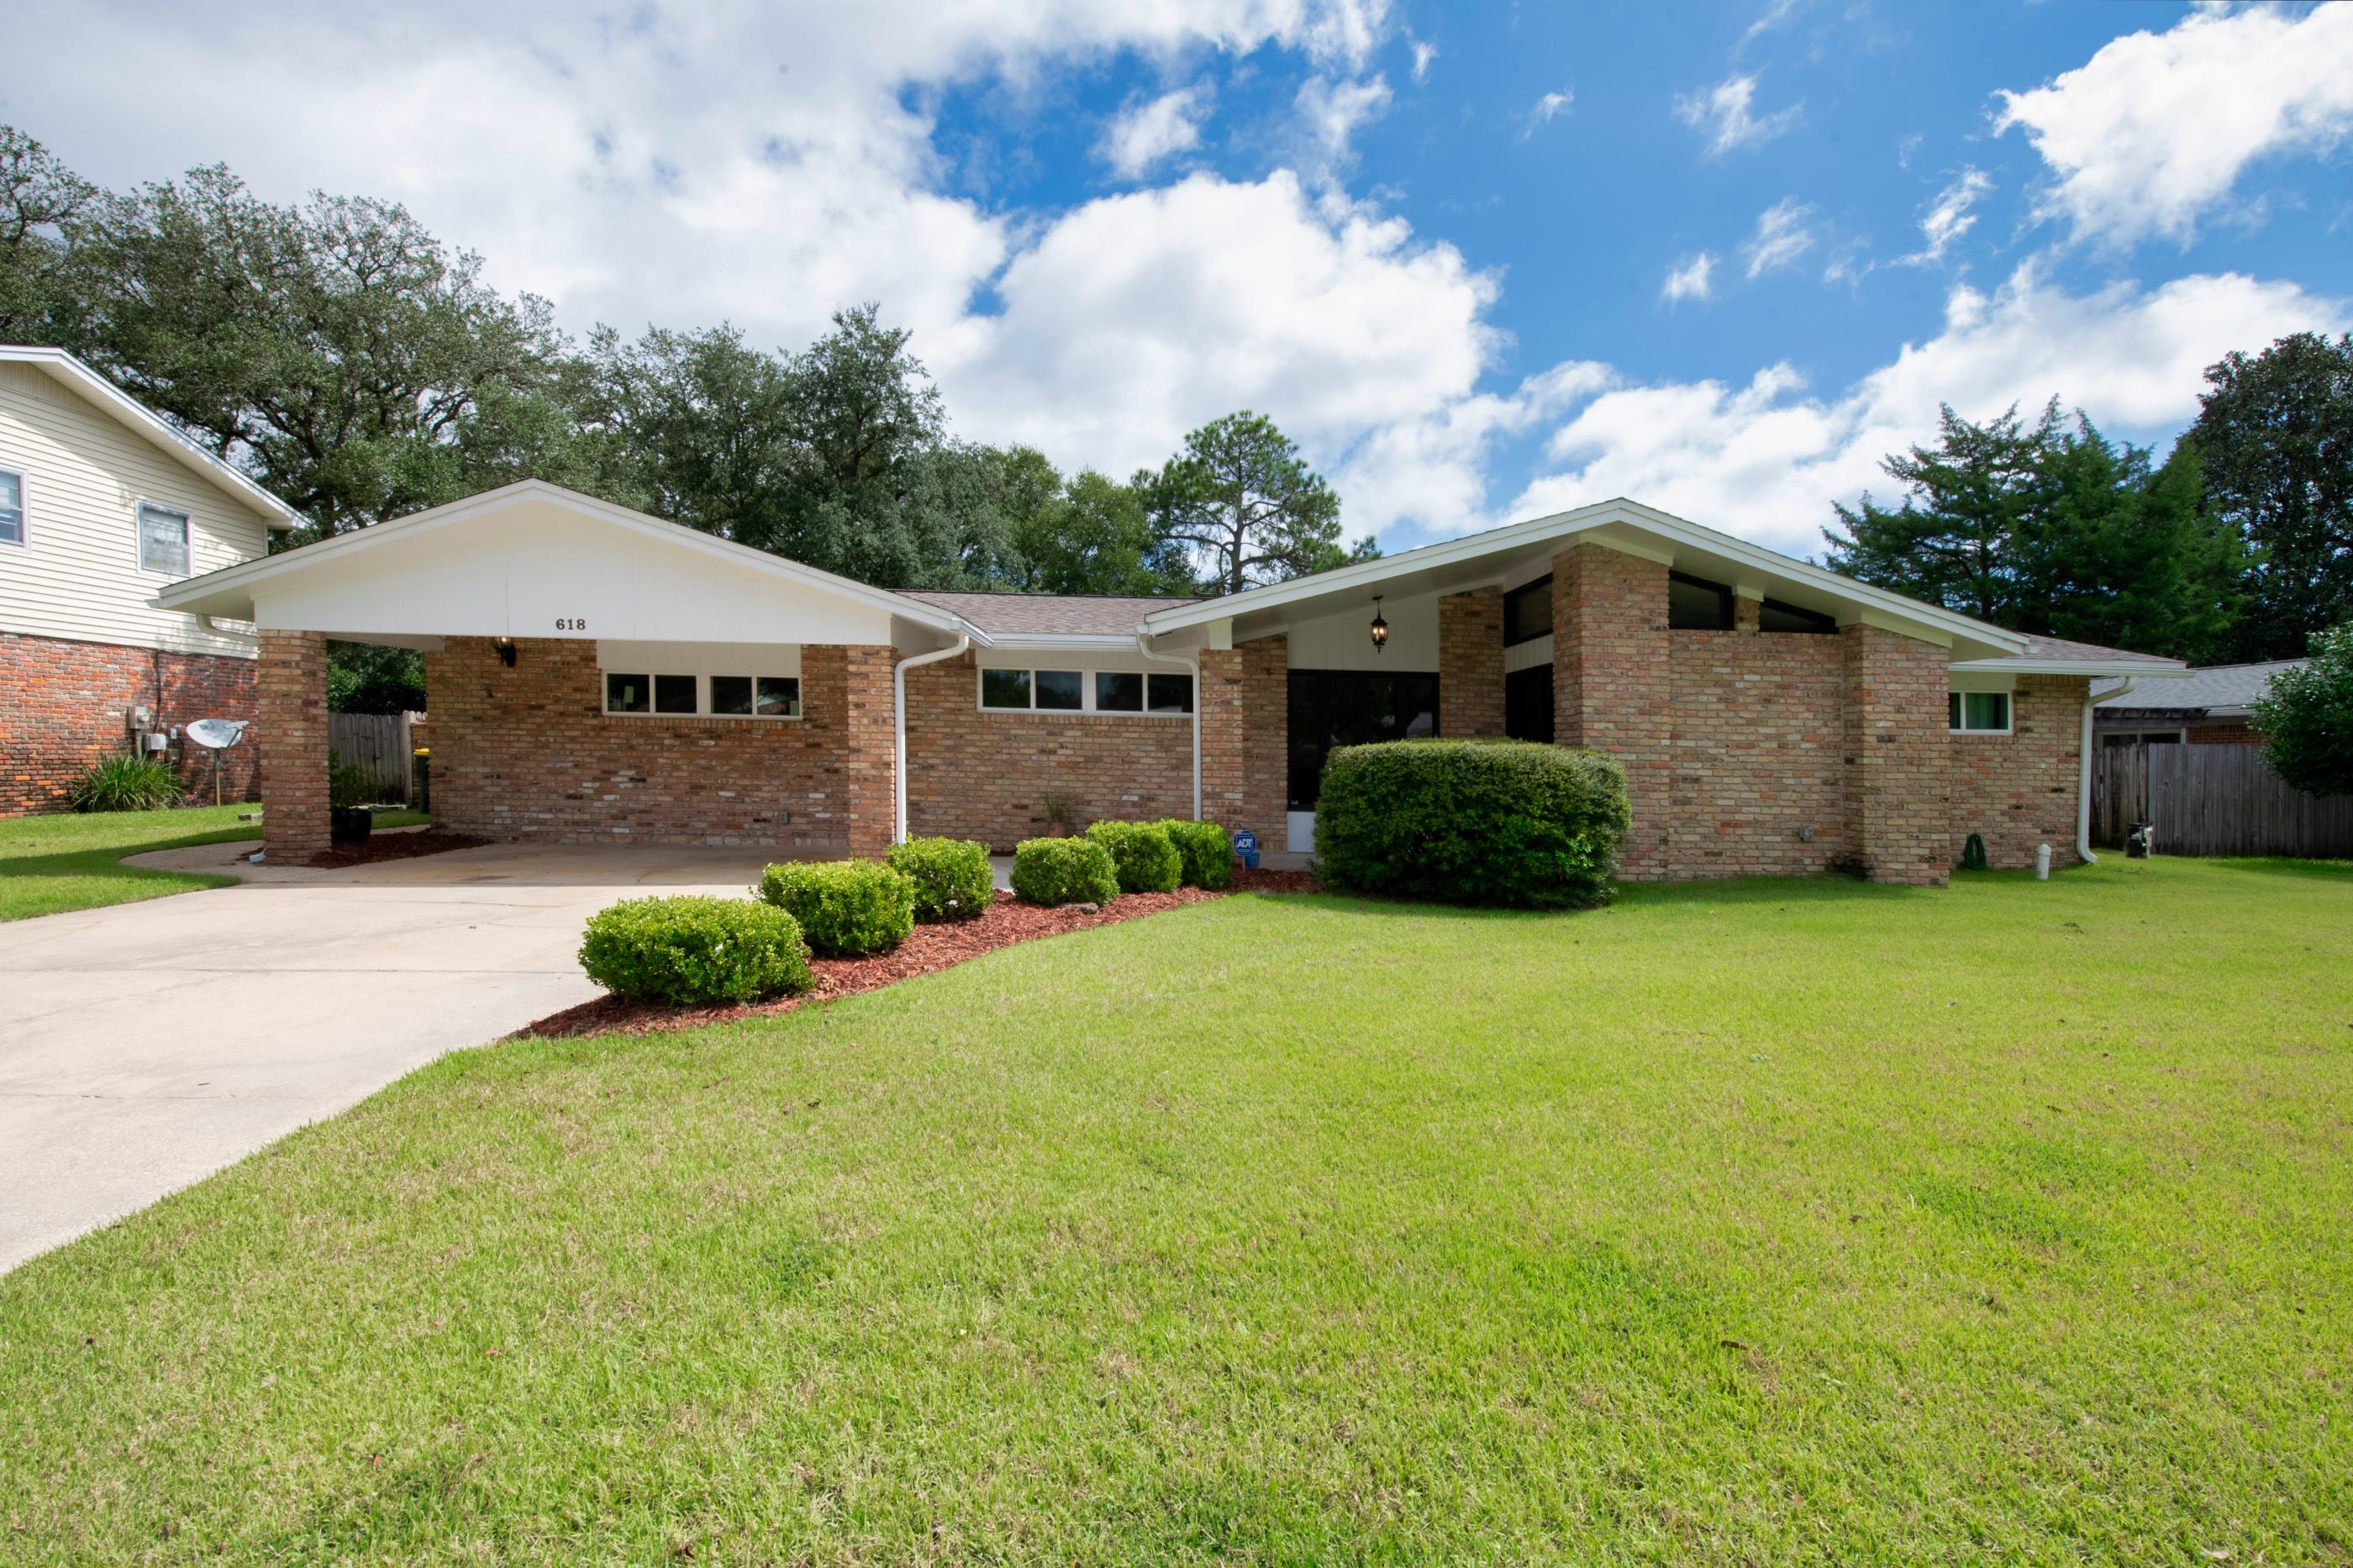 Photo of home for sale at 618 Merioneth, Fort Walton Beach FL